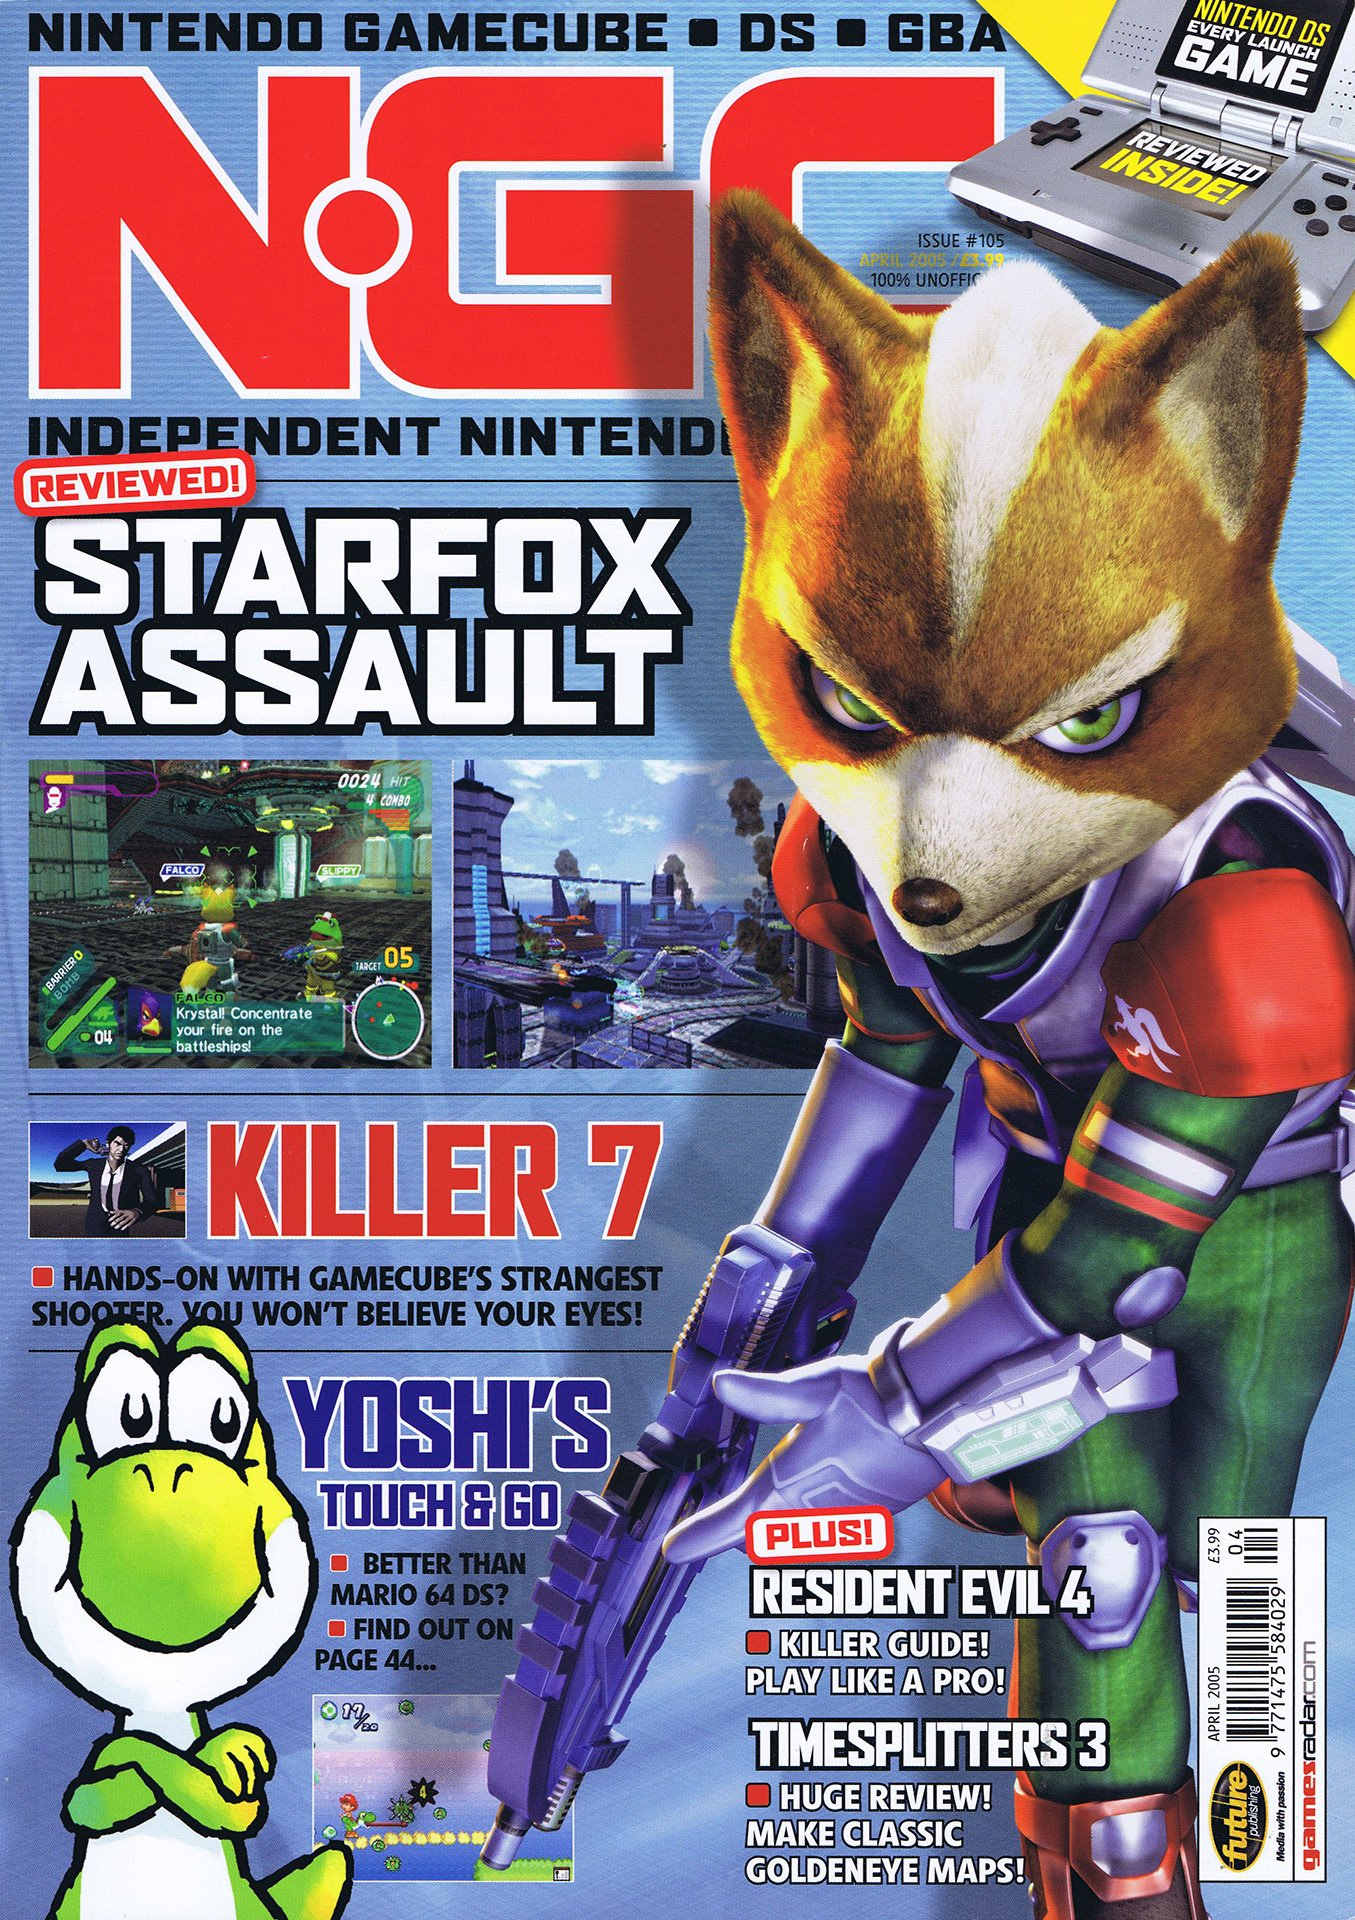 NGC Issue 105 (April 2005)